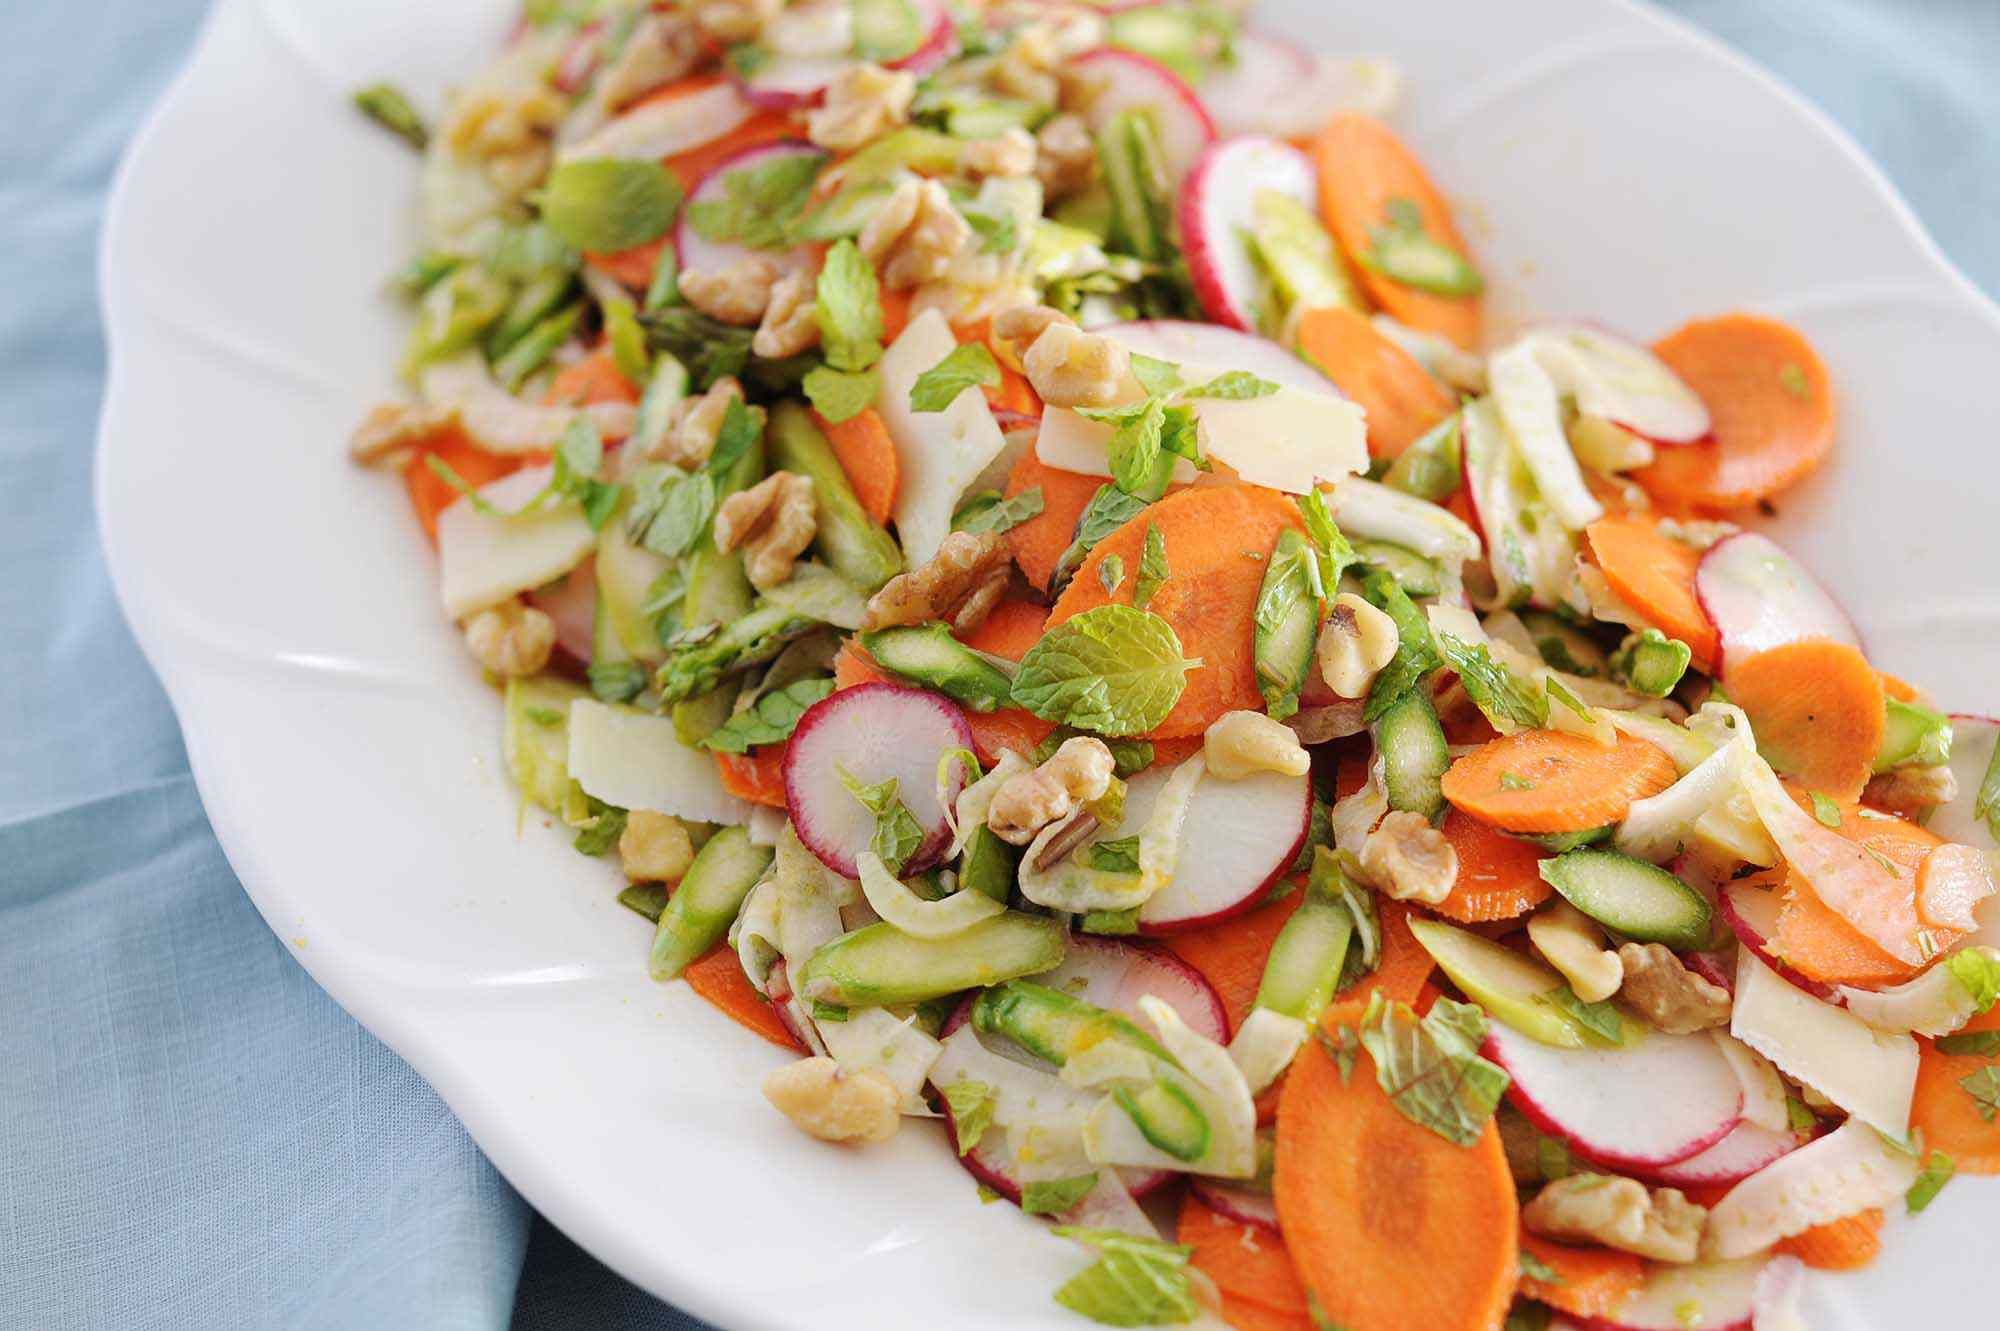 A white platter with an easy spring salad. Thinly sliced carrot, radish, fennel and asparagus are mixed together and mint leaves and chopped nuts are scattered around the top. The platter is on a light blue linen.